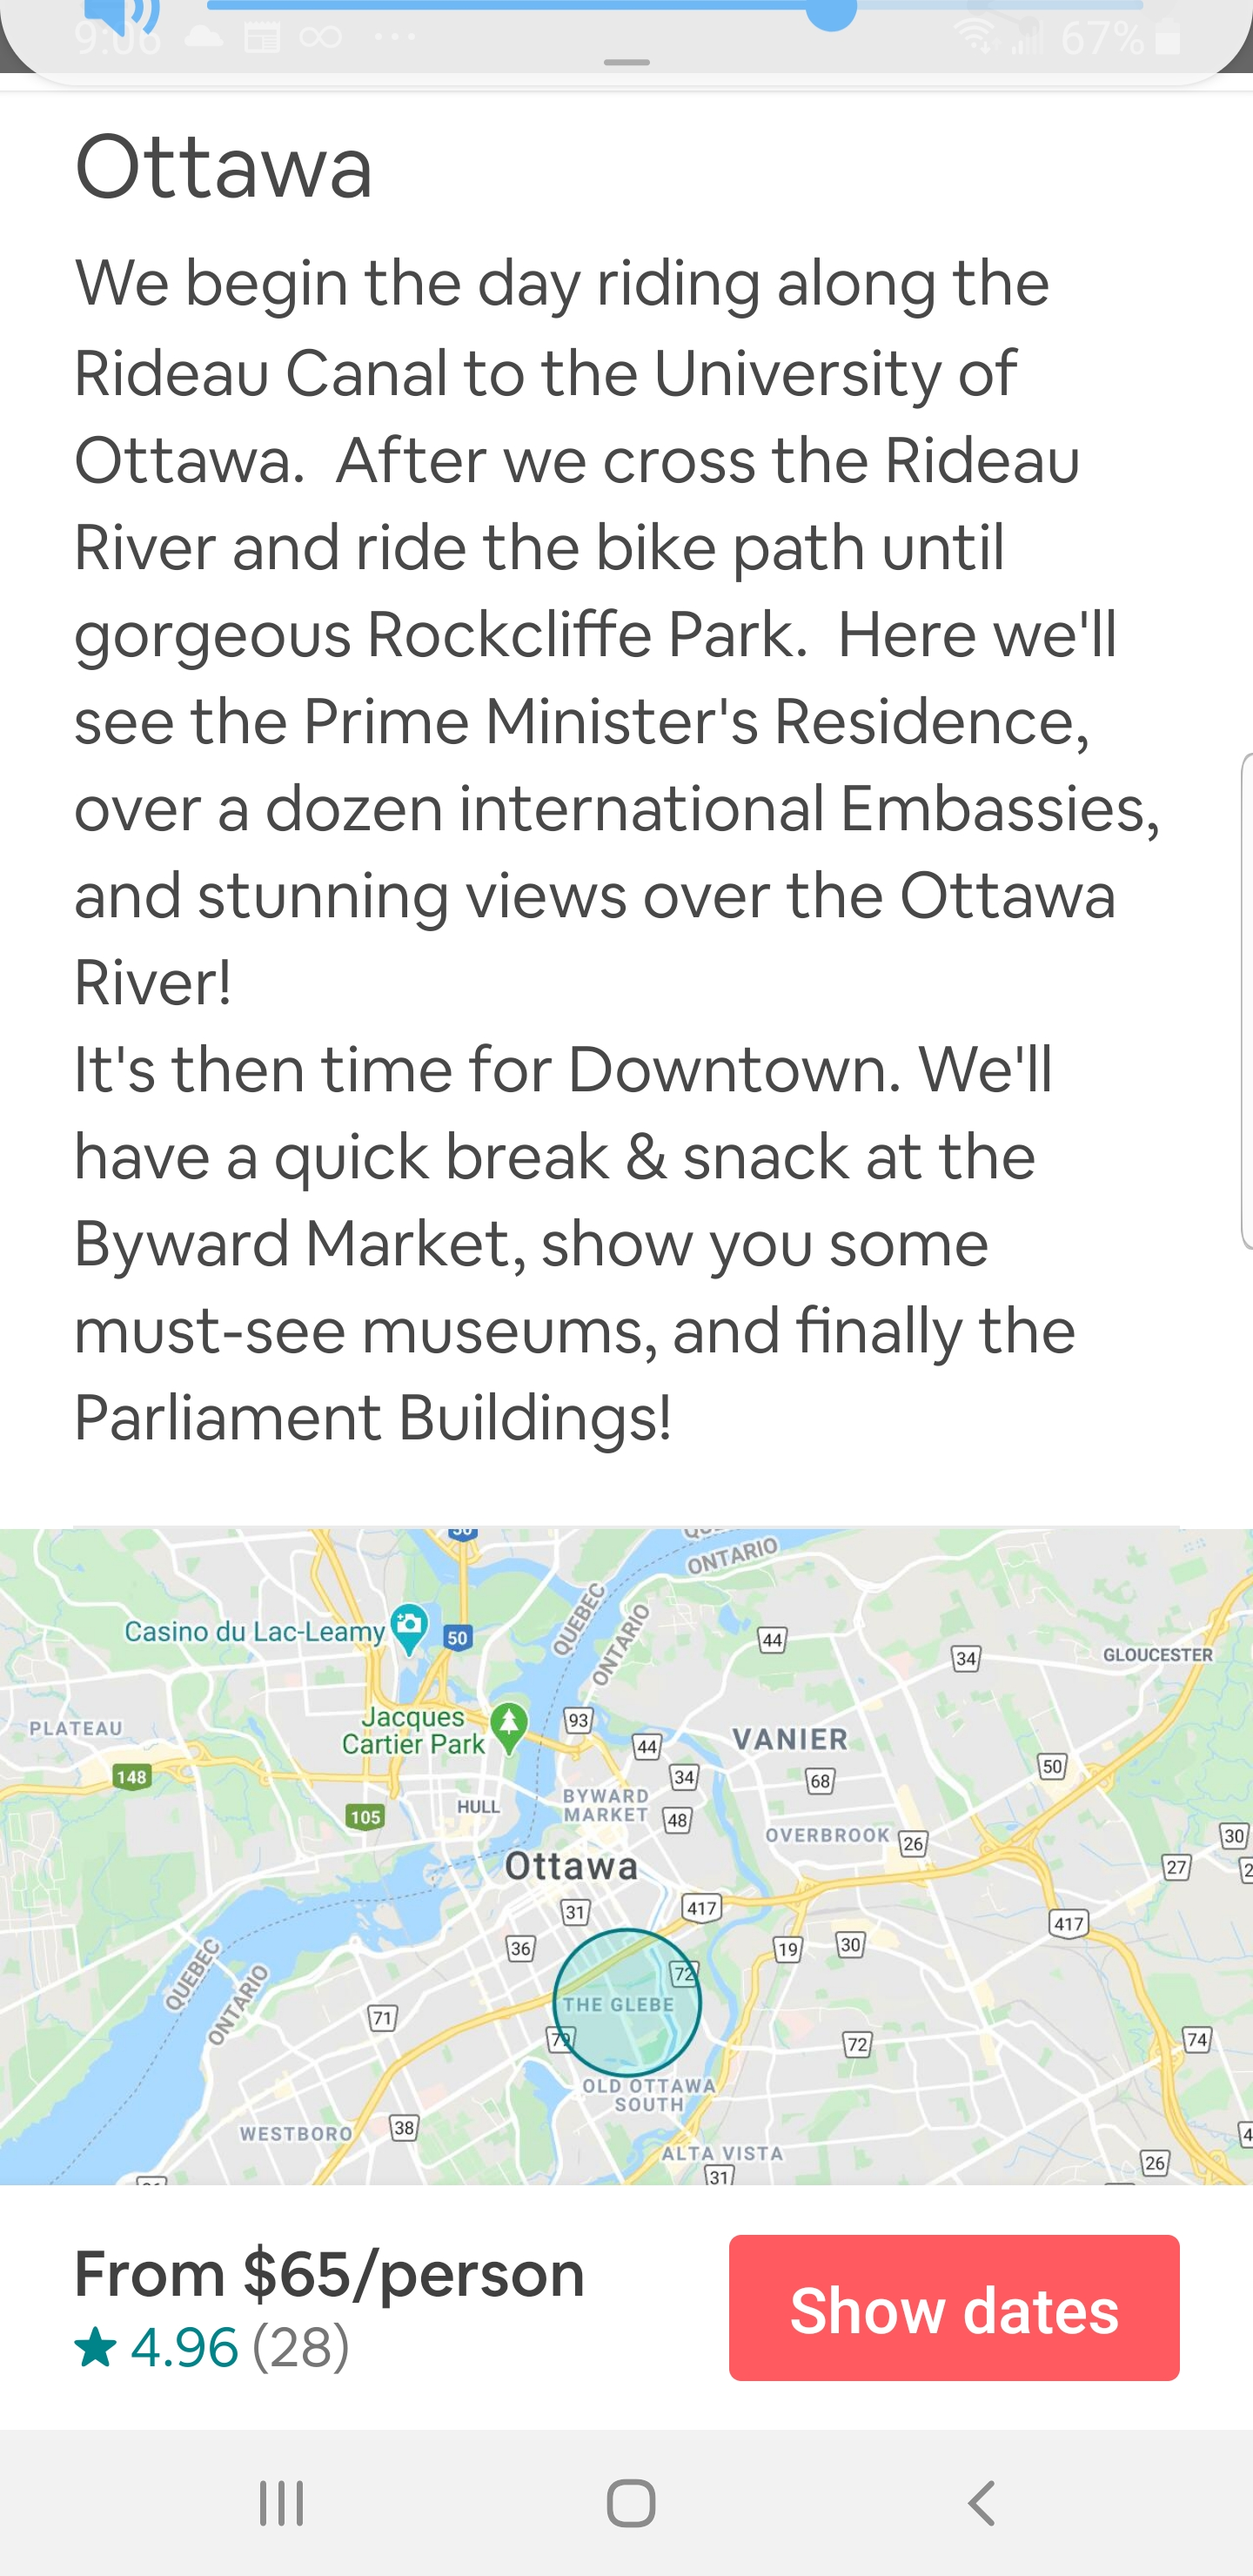 AirBNB - Cycle Tour Experience of Ottawa